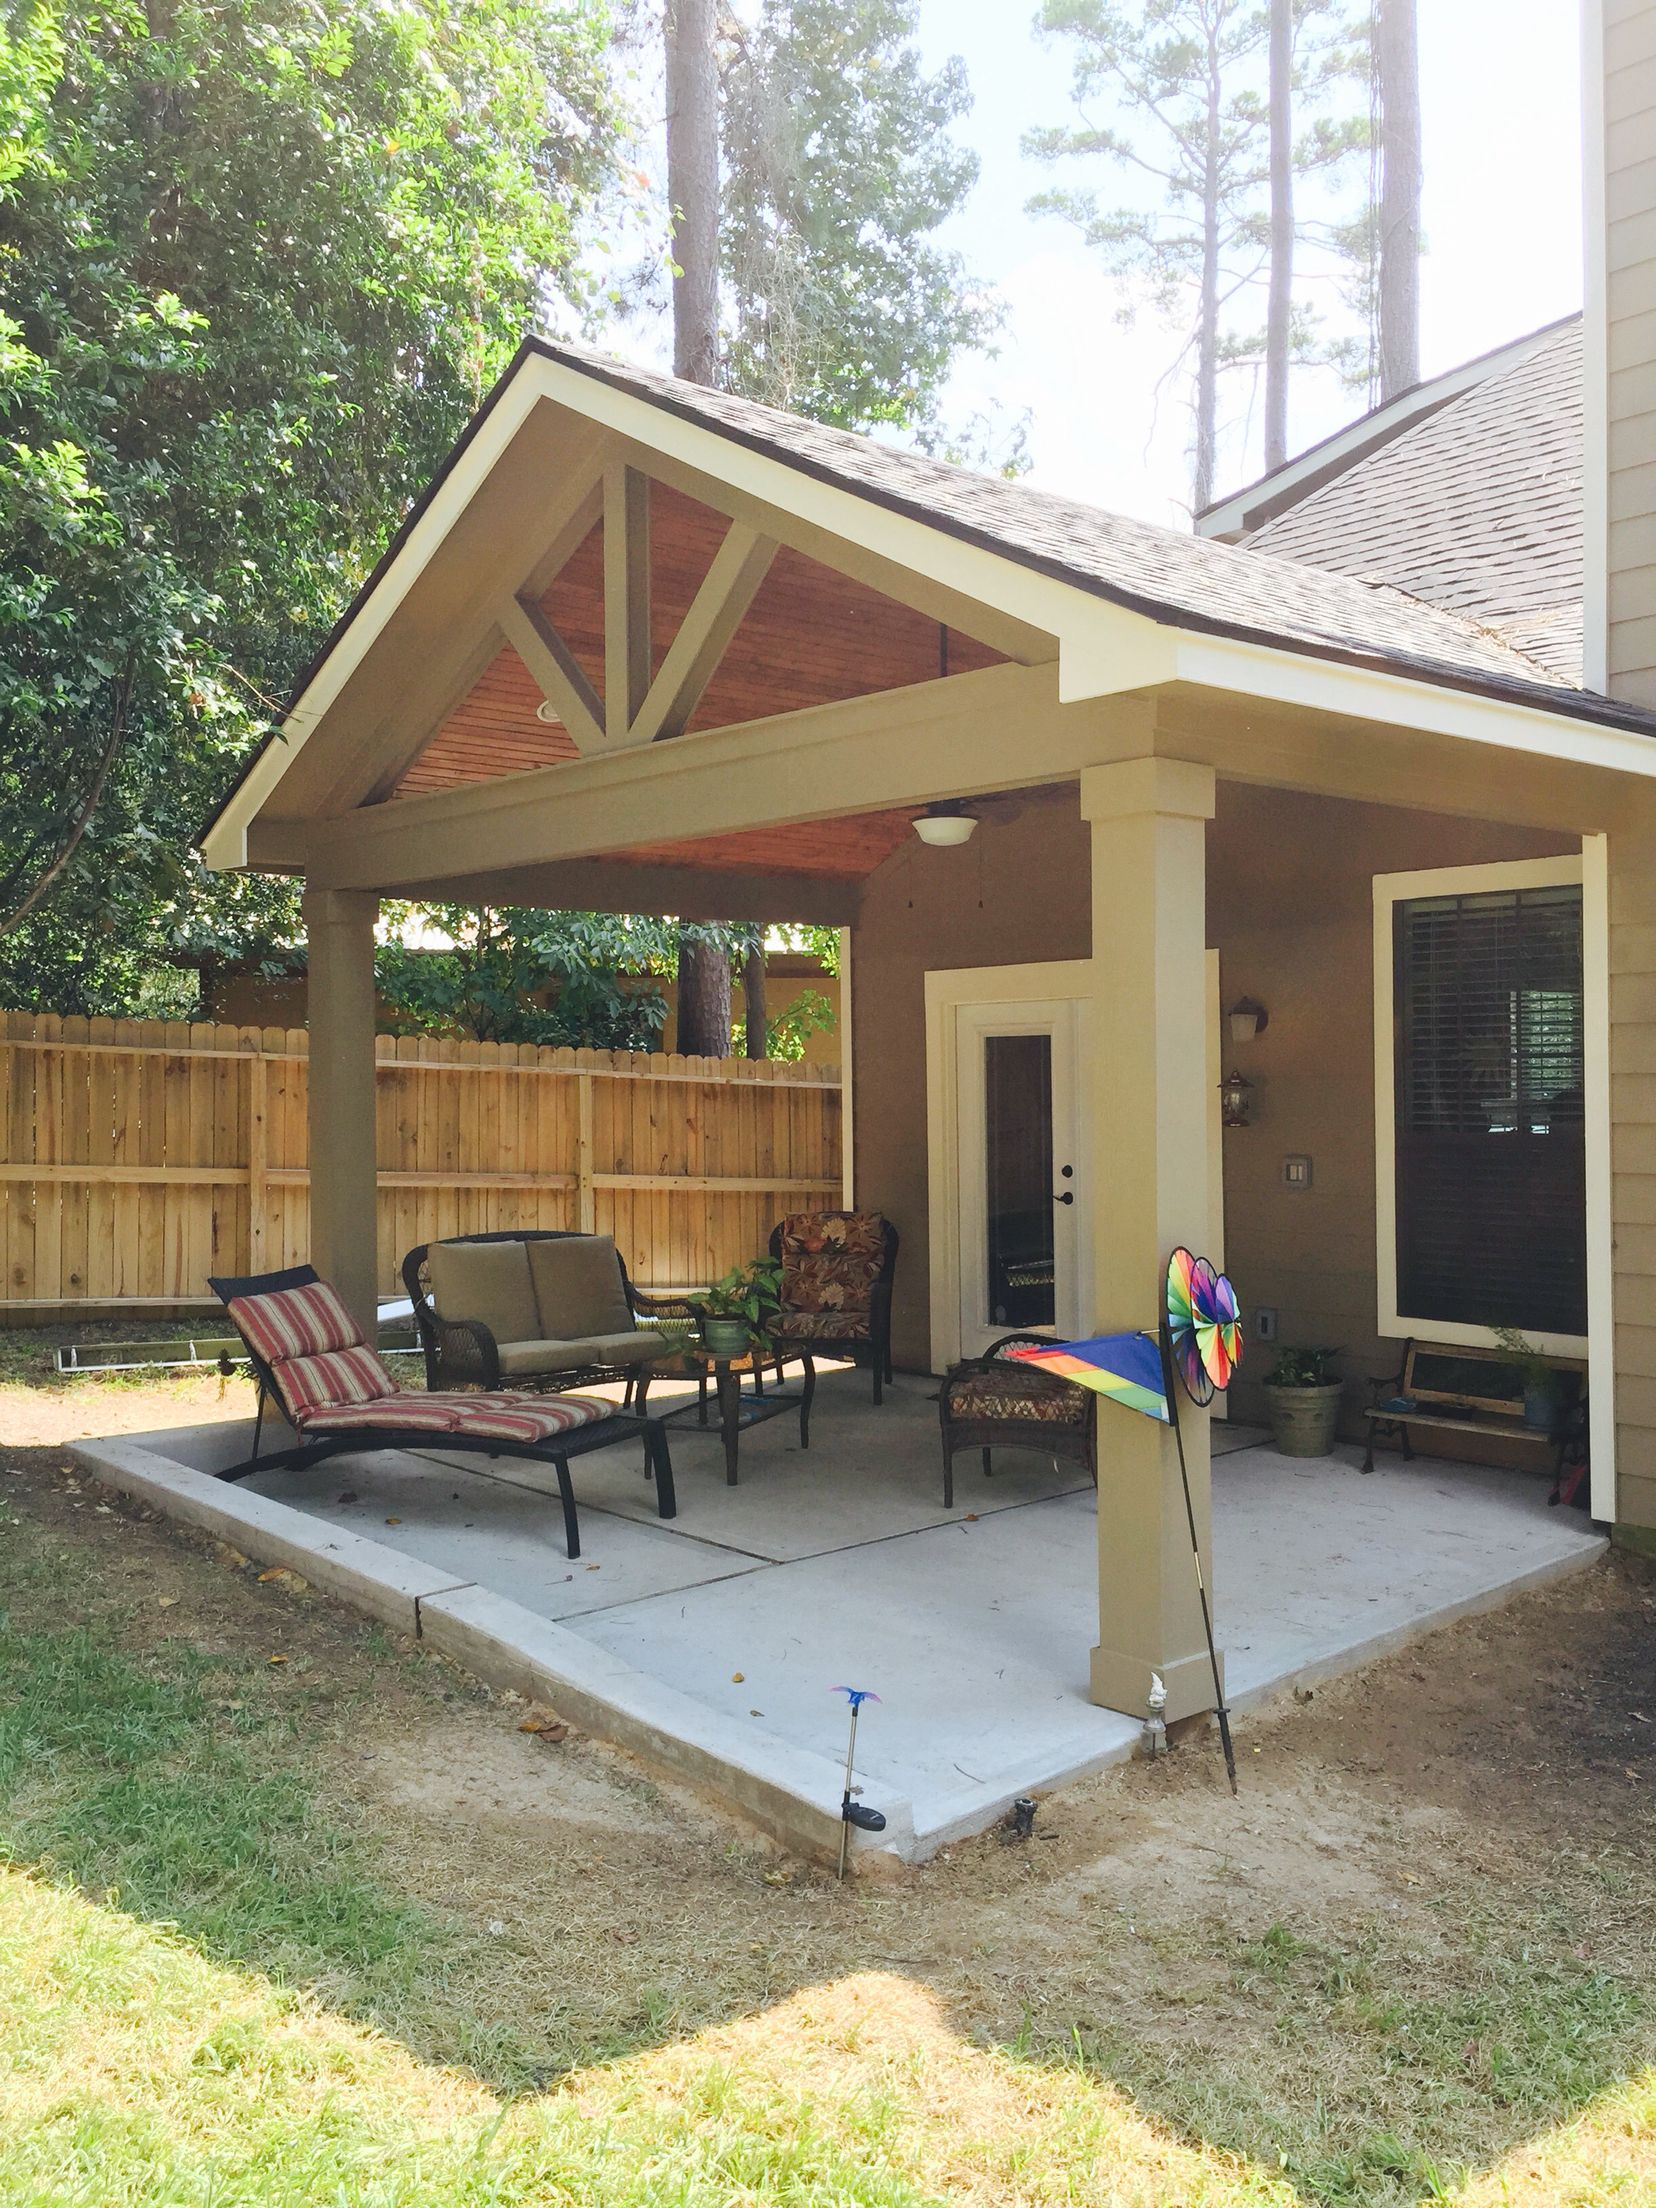 Gable roof patio cover with wood stained ceiling